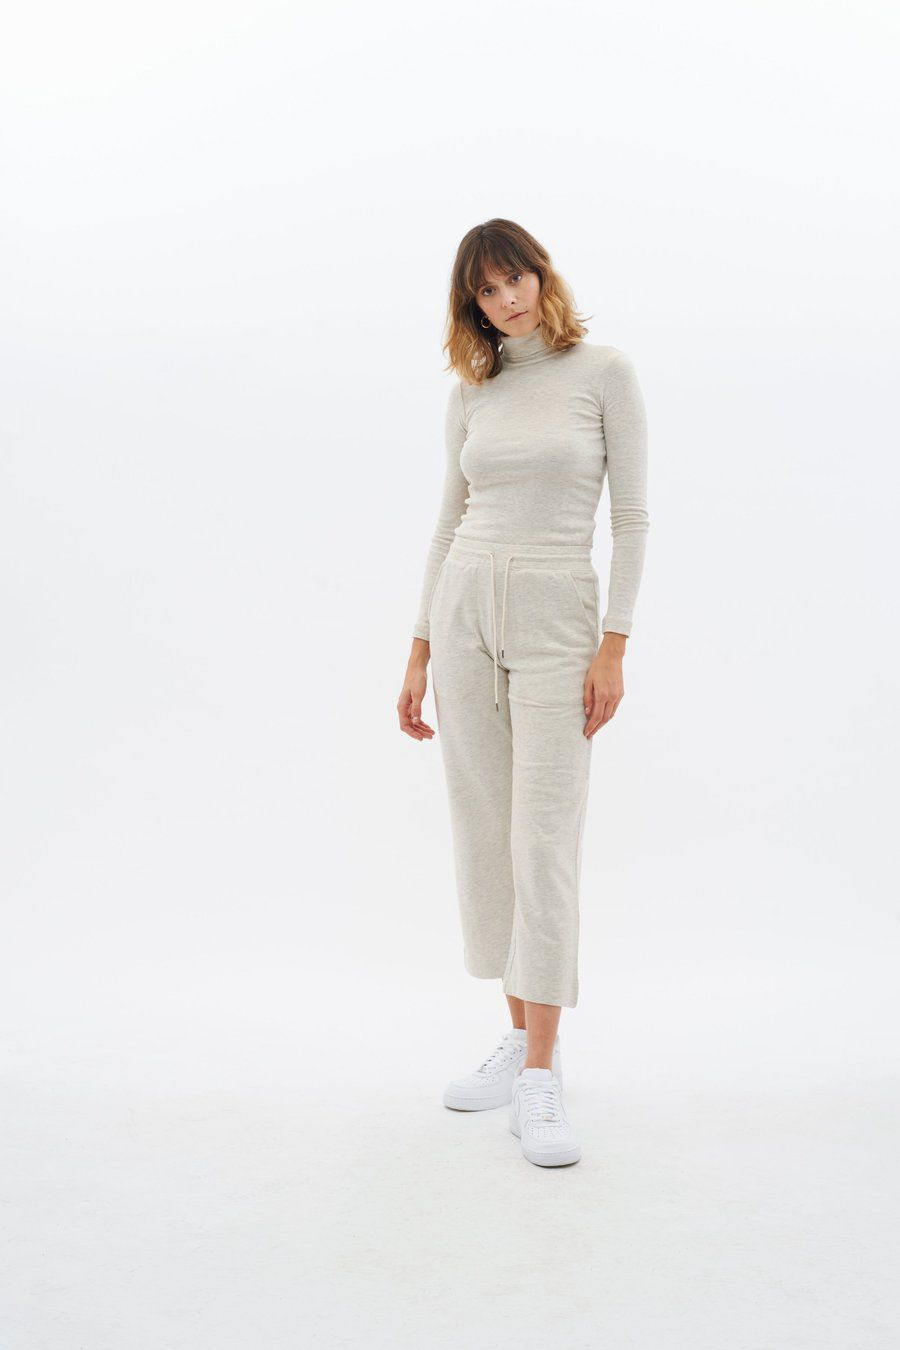 Culotte Sweatpants Kotn kotn.com $48.00 SHOP NOW Kotn is completely transparent with its sustainable practices. The brand's site details where and how they source its trademark Egyptian cotton, the people creating each item, and its charitable contributions.